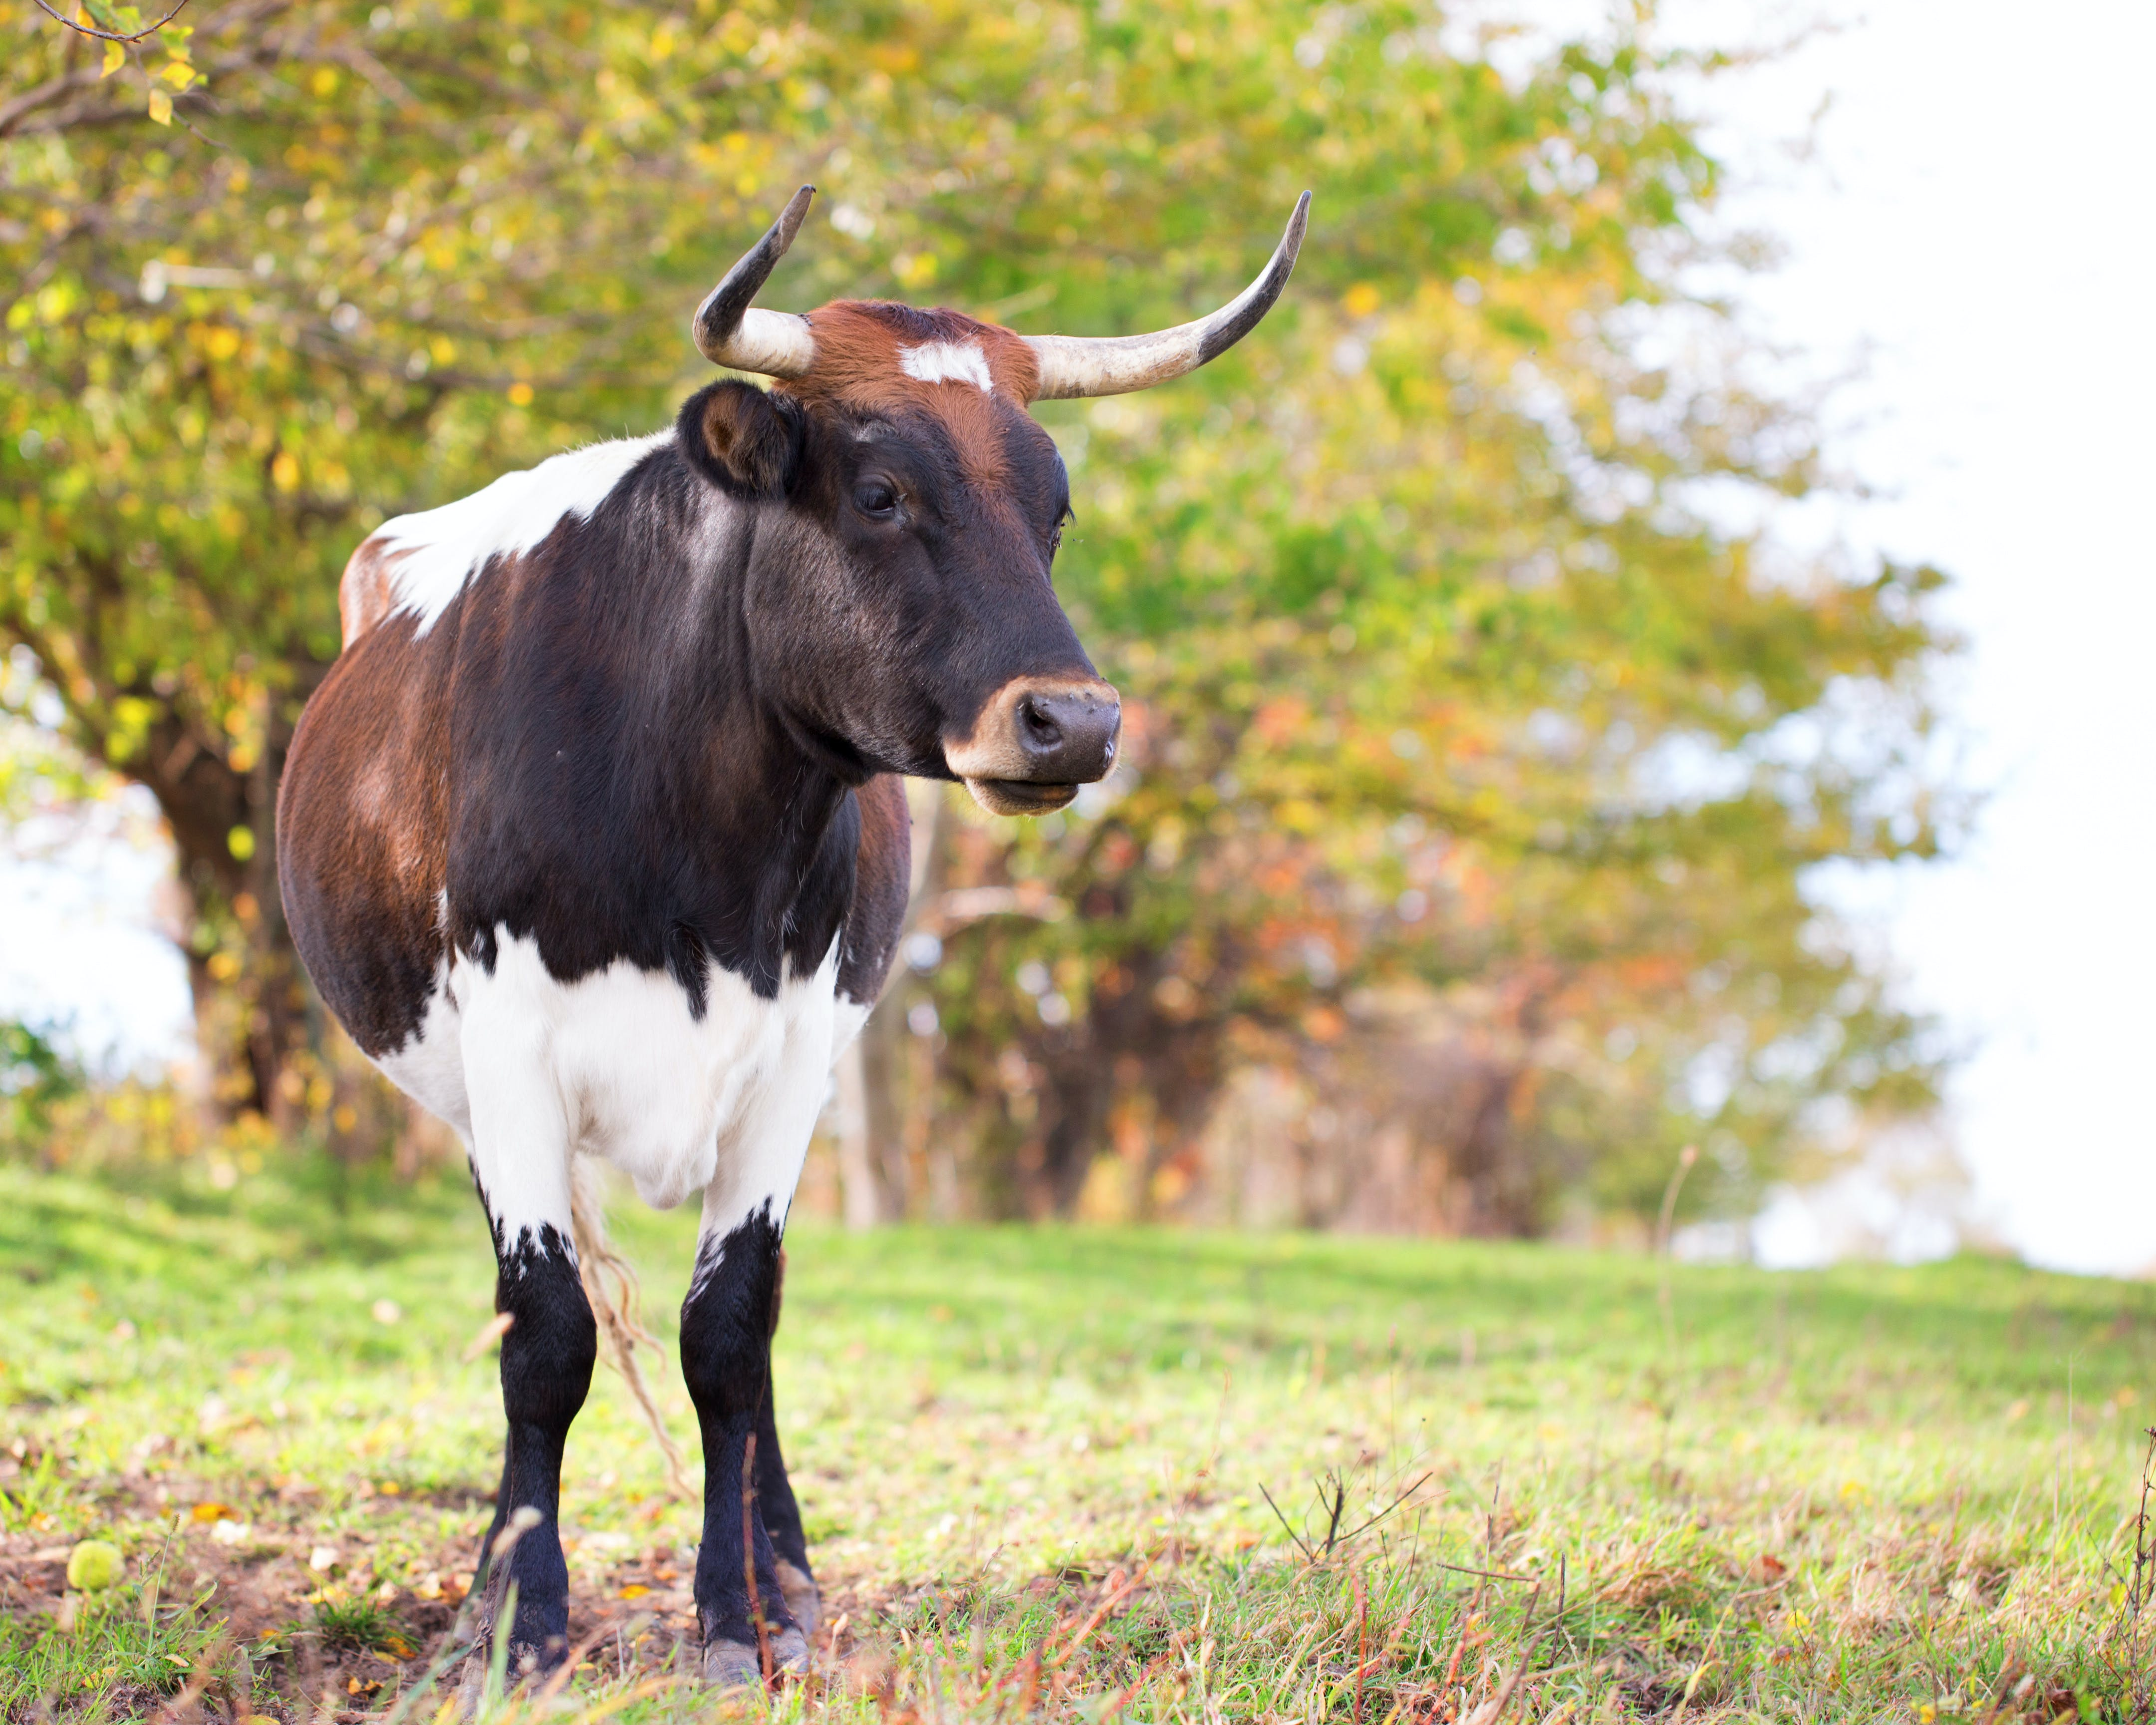 Free stock photo of animals, cow, cows, domestic animal